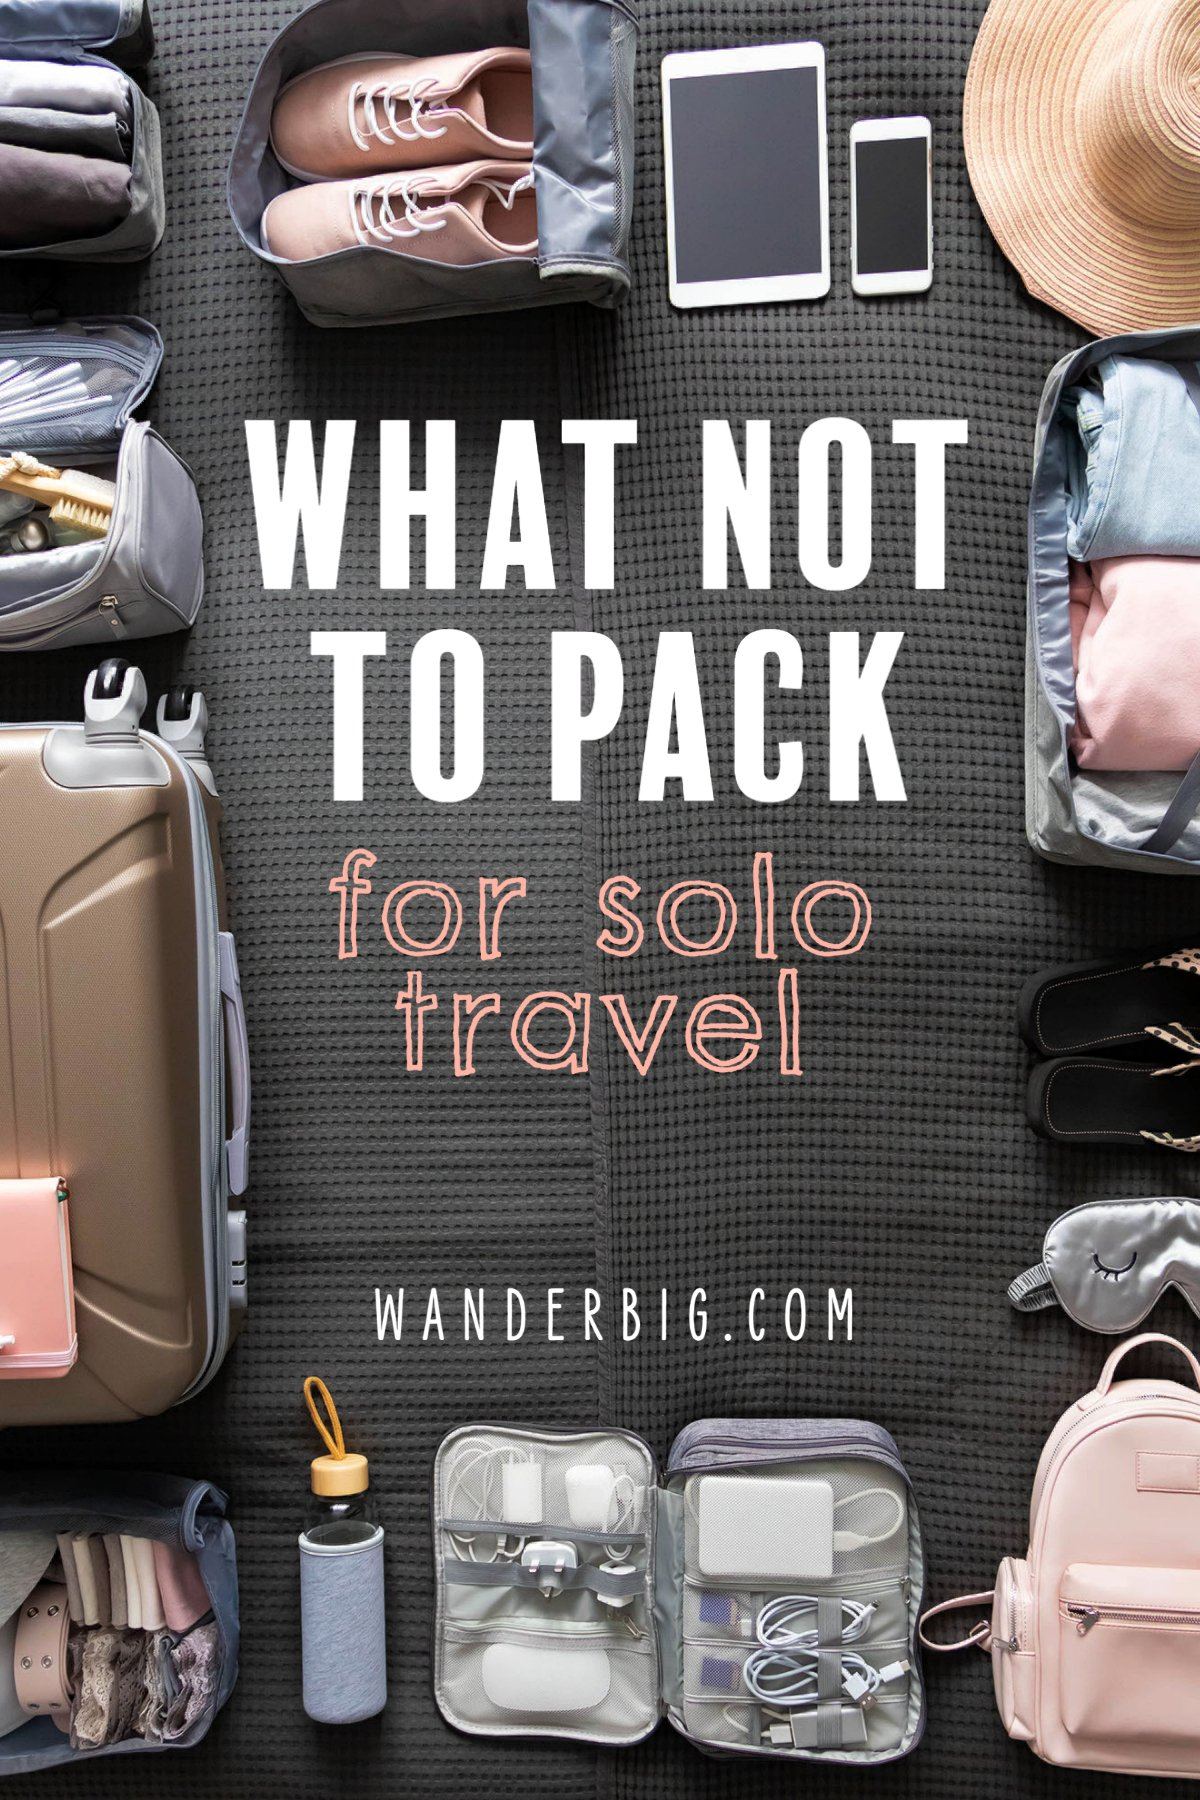 What not to pack for solo travel text on background of travel supplies.